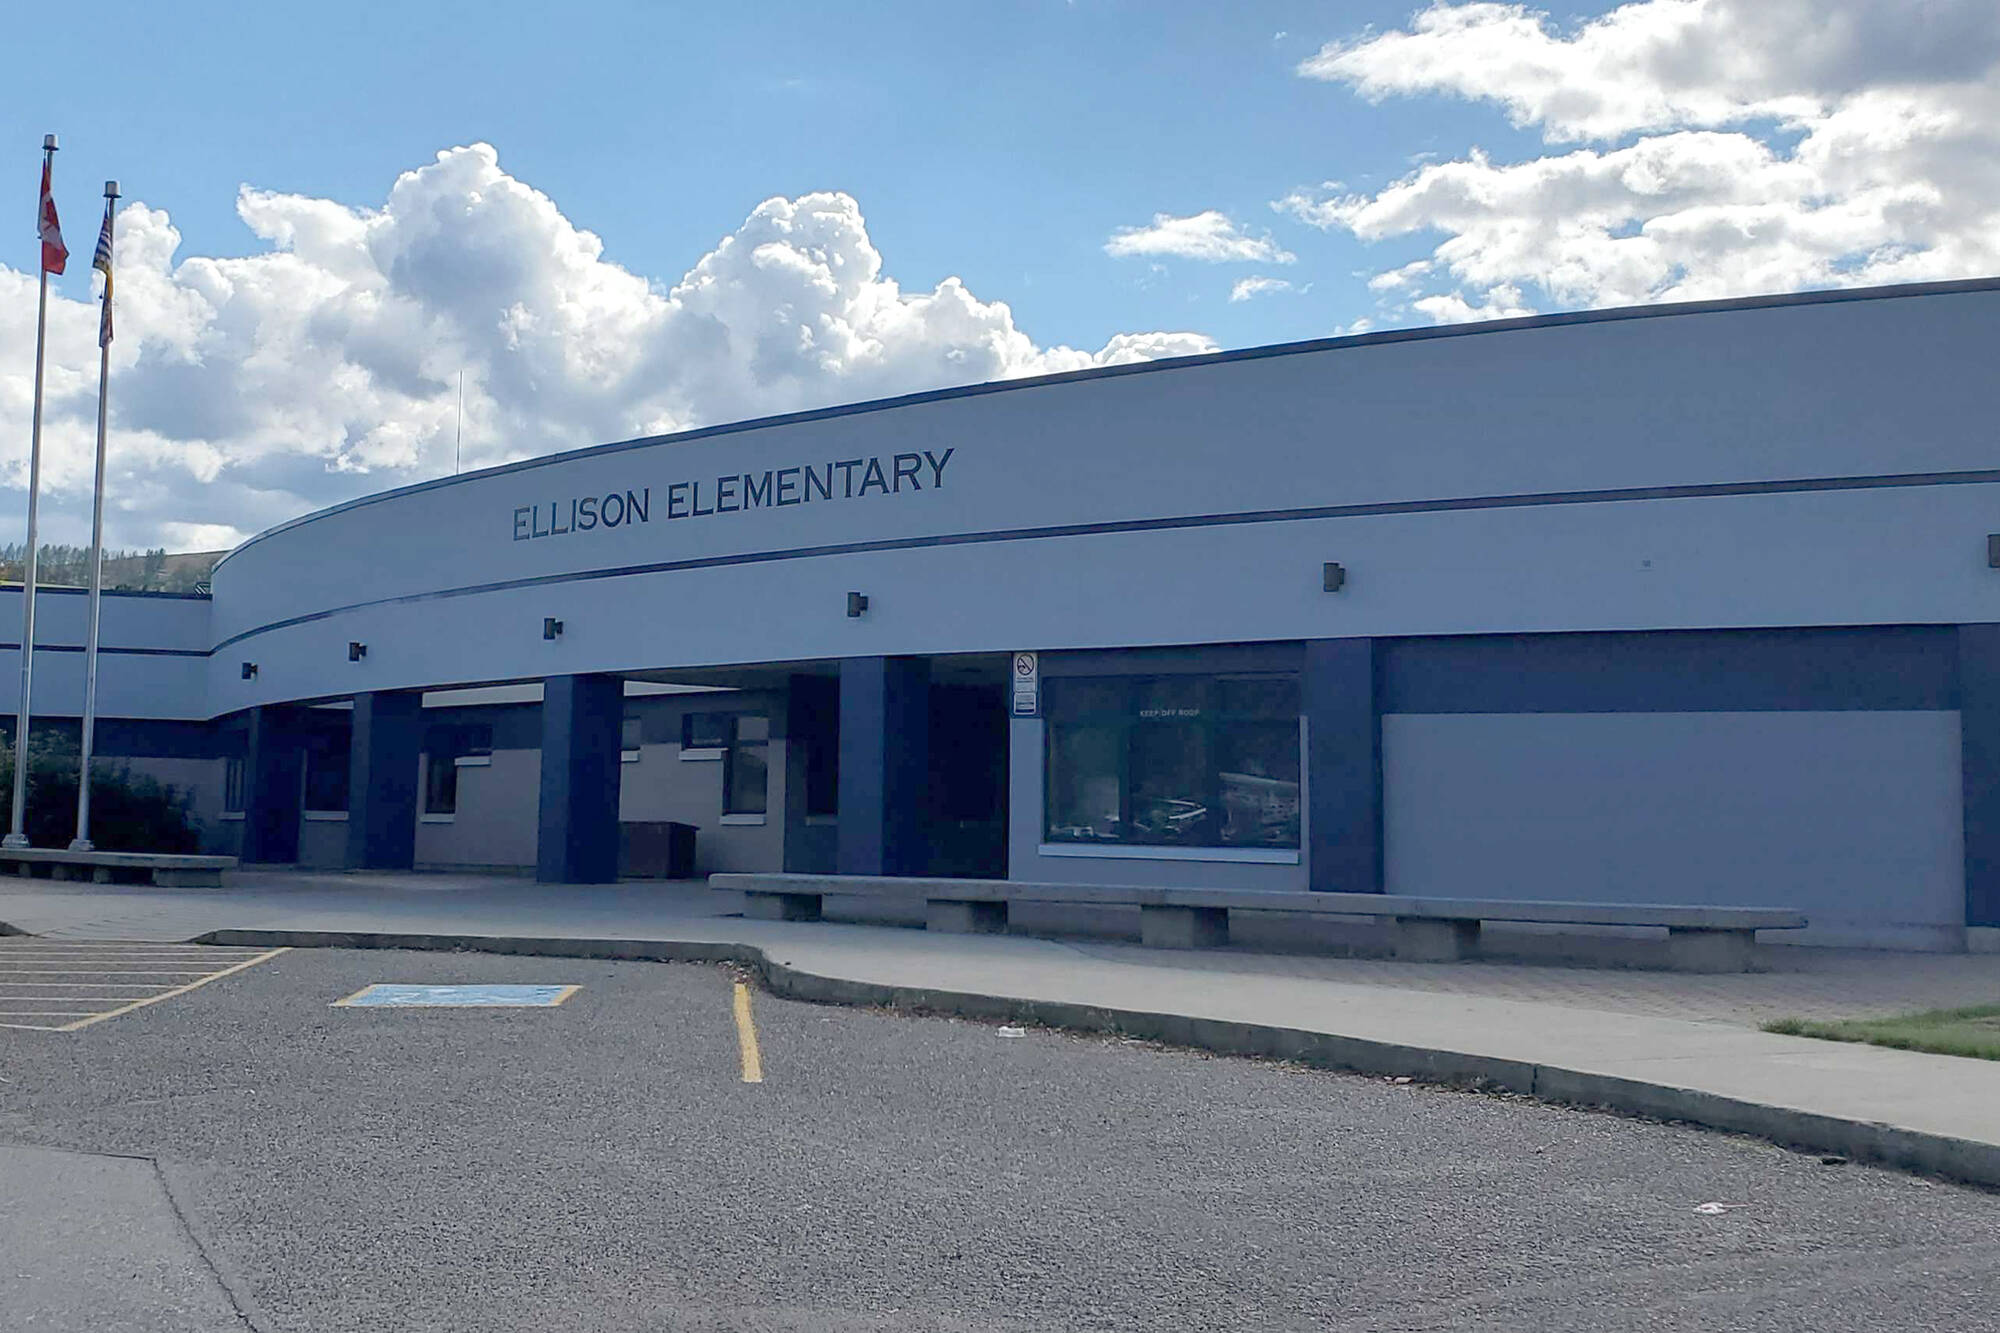 The province annouces $165,000 to build an accessible playground at Ellison Elementary in Vernon. (Roger Knox - Vernon Morning Star)